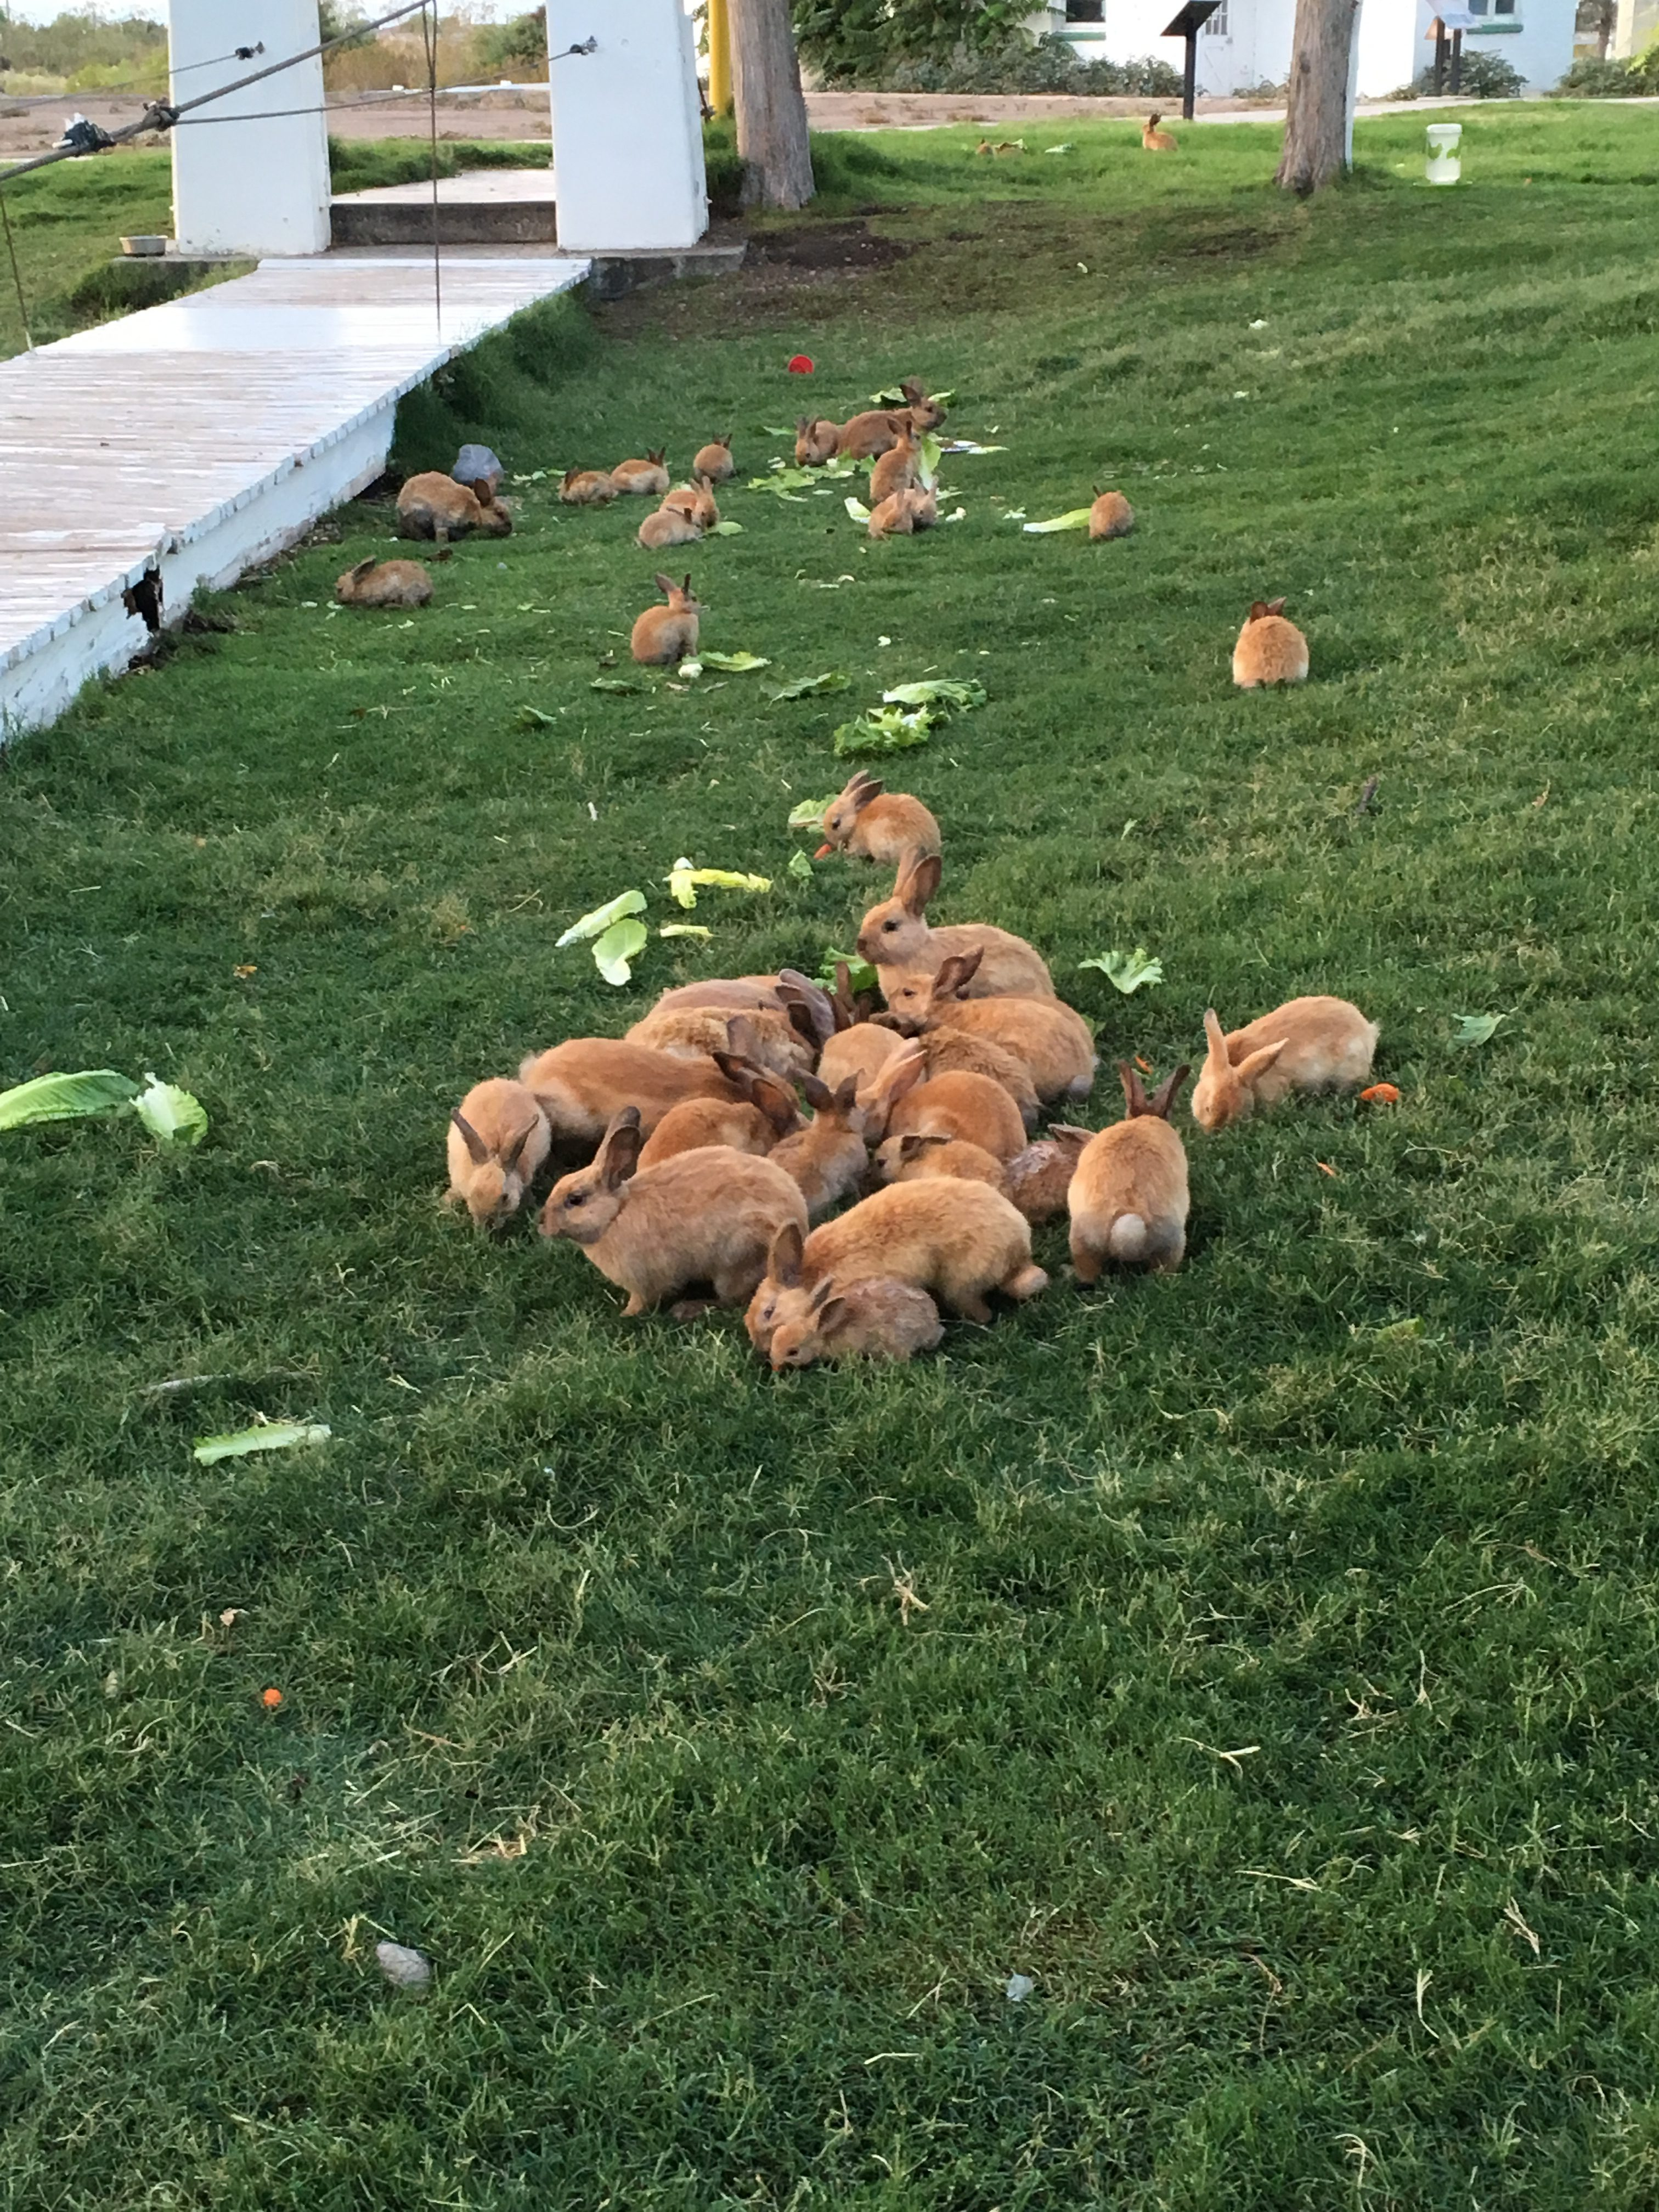 Two New Emergency Rescue Grants Go To Nevada And Iowa House Rabbit